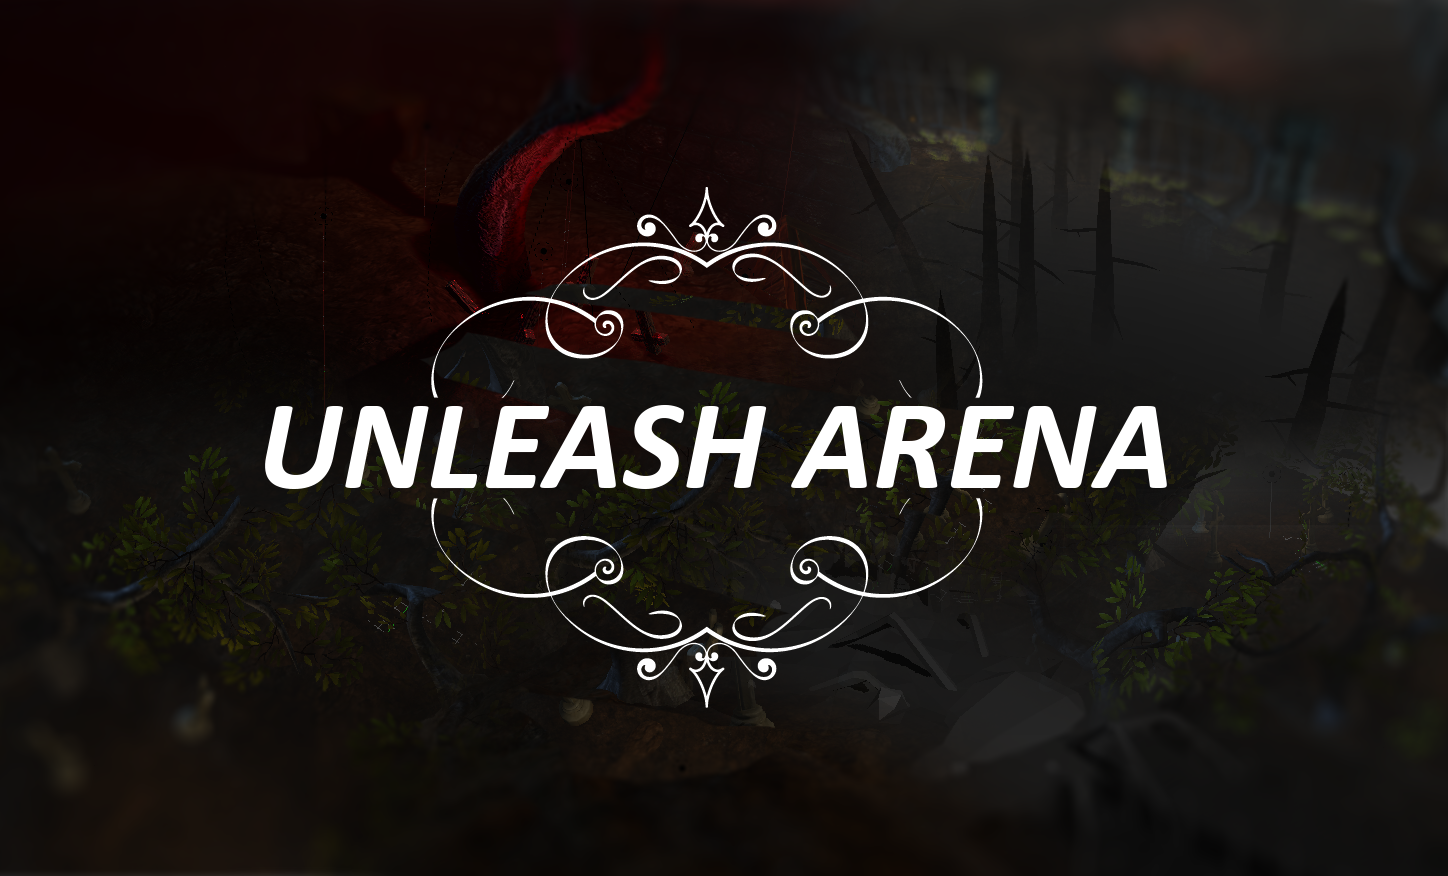 Unleash Arena